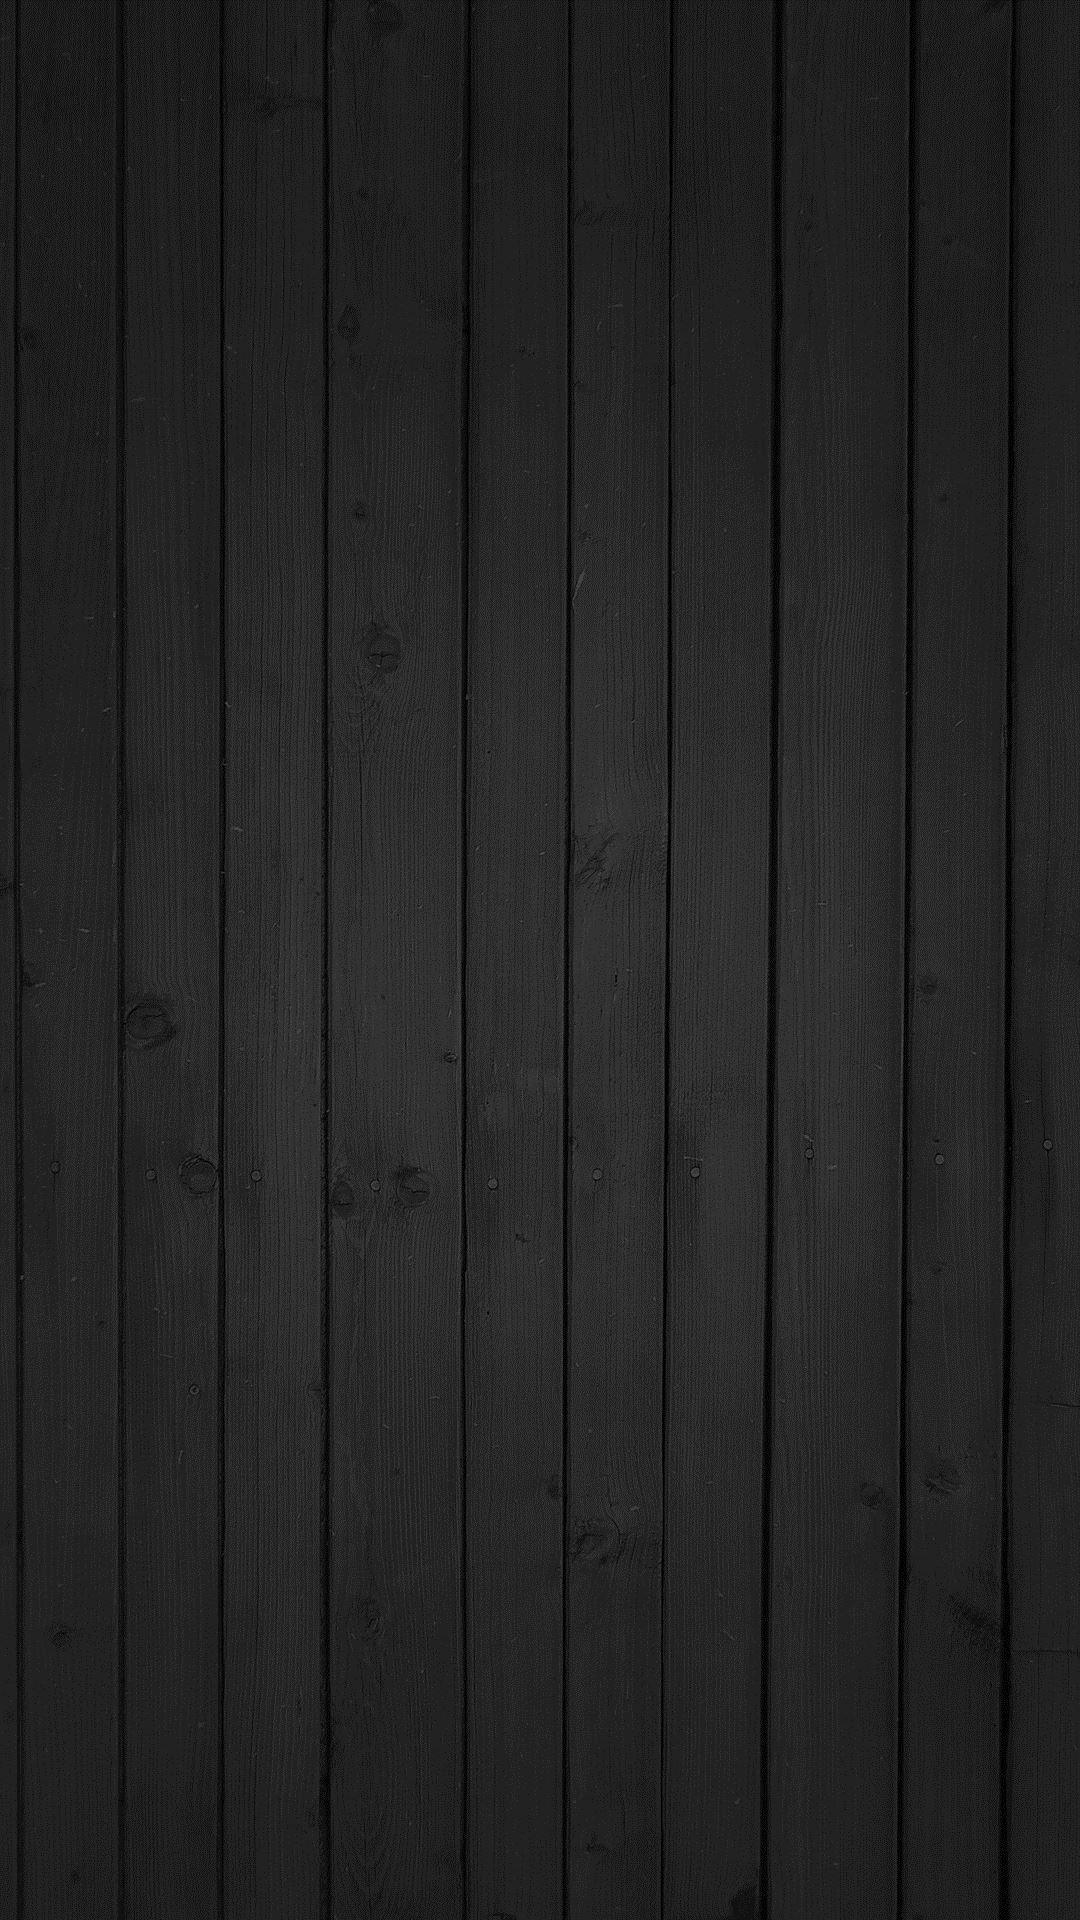 Get Great Black Wallpaper for iPhone Today